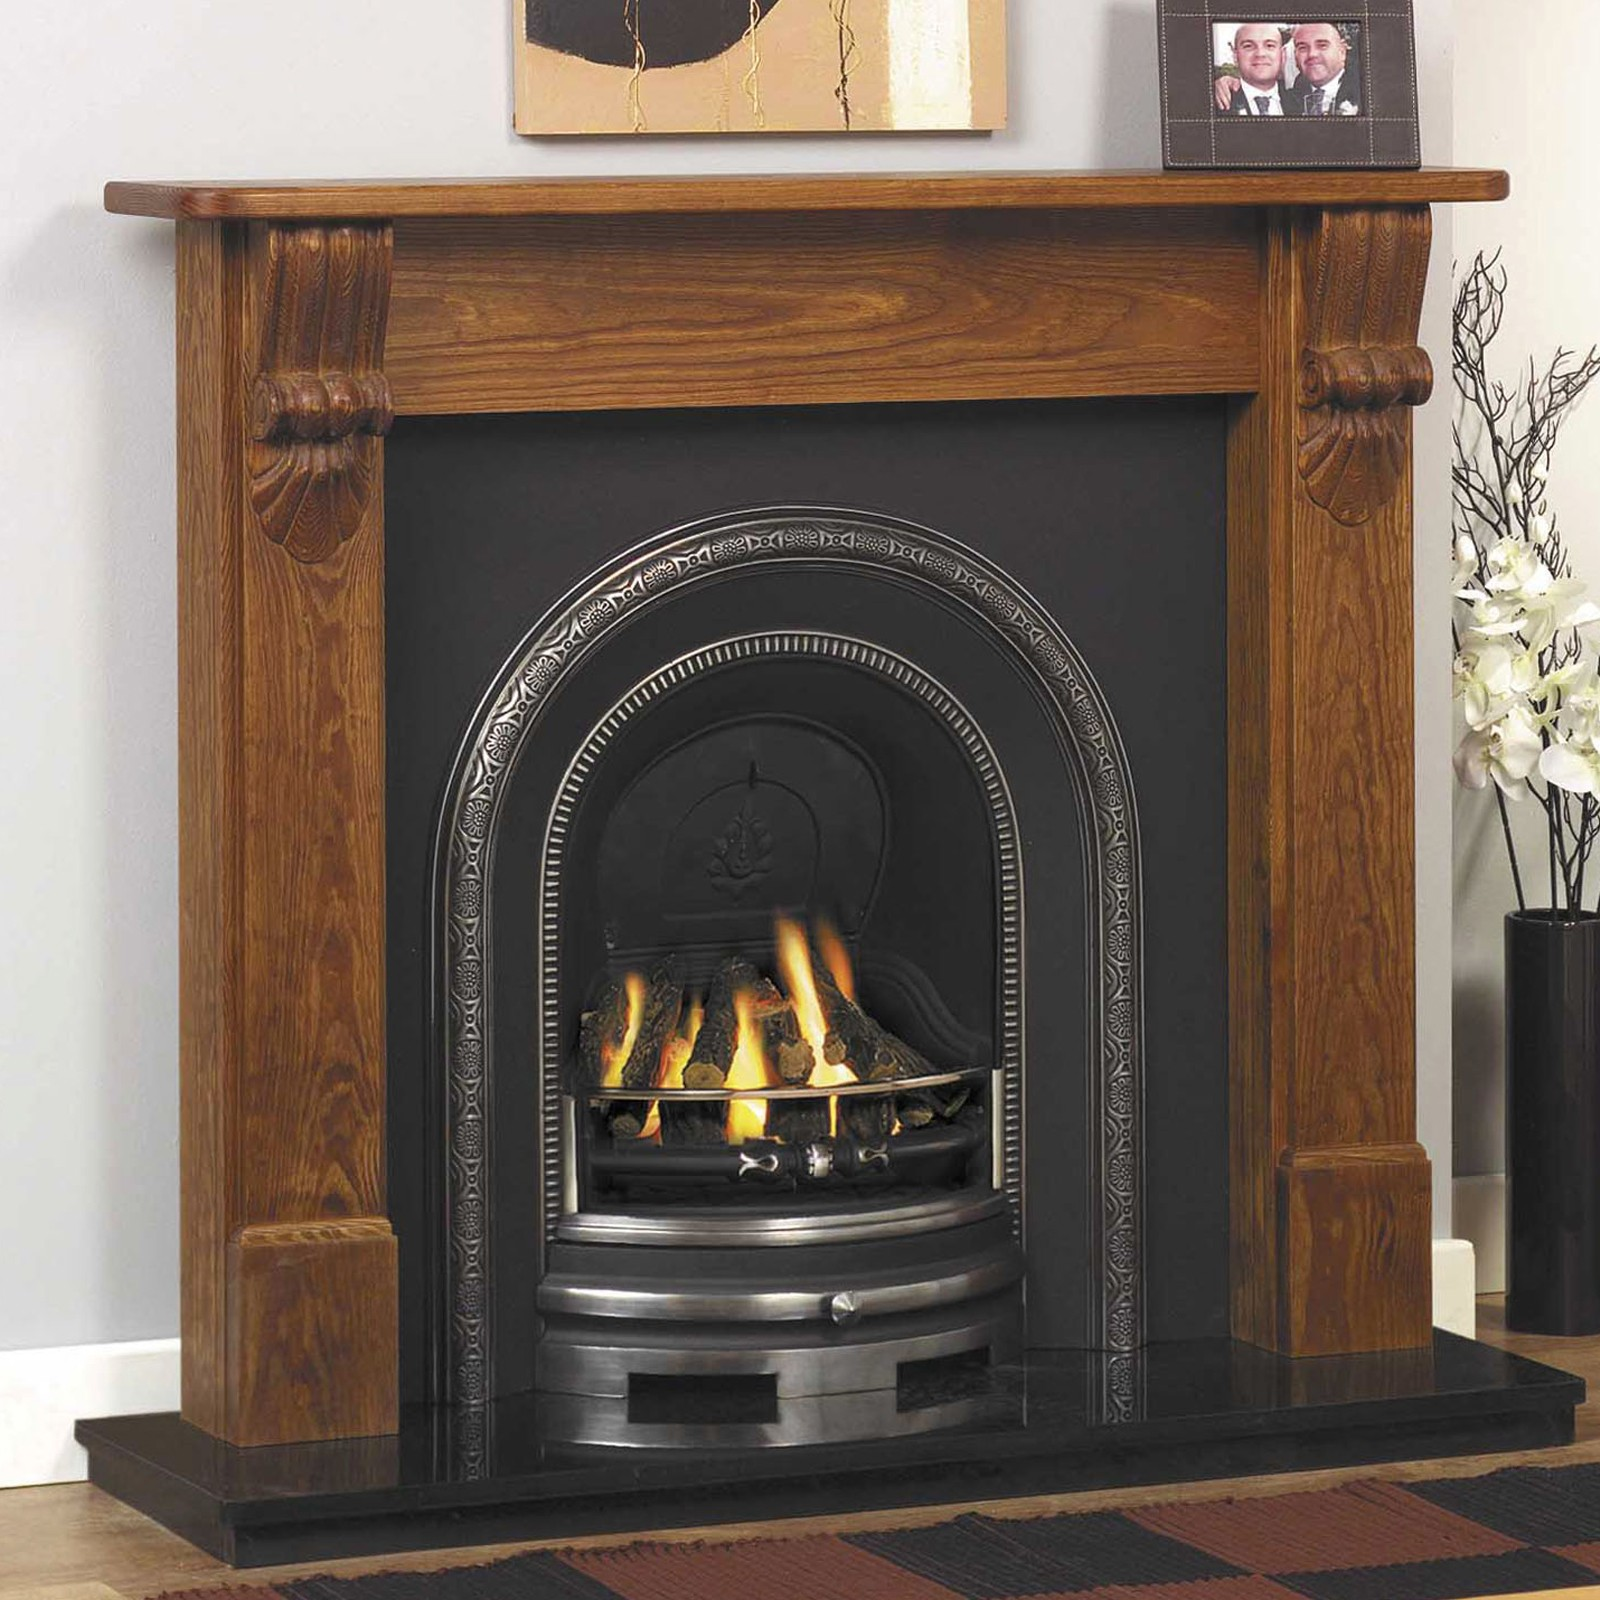 Top quality products gb mantels cheshire fireplace suite for Cheap wooden fireplace surrounds